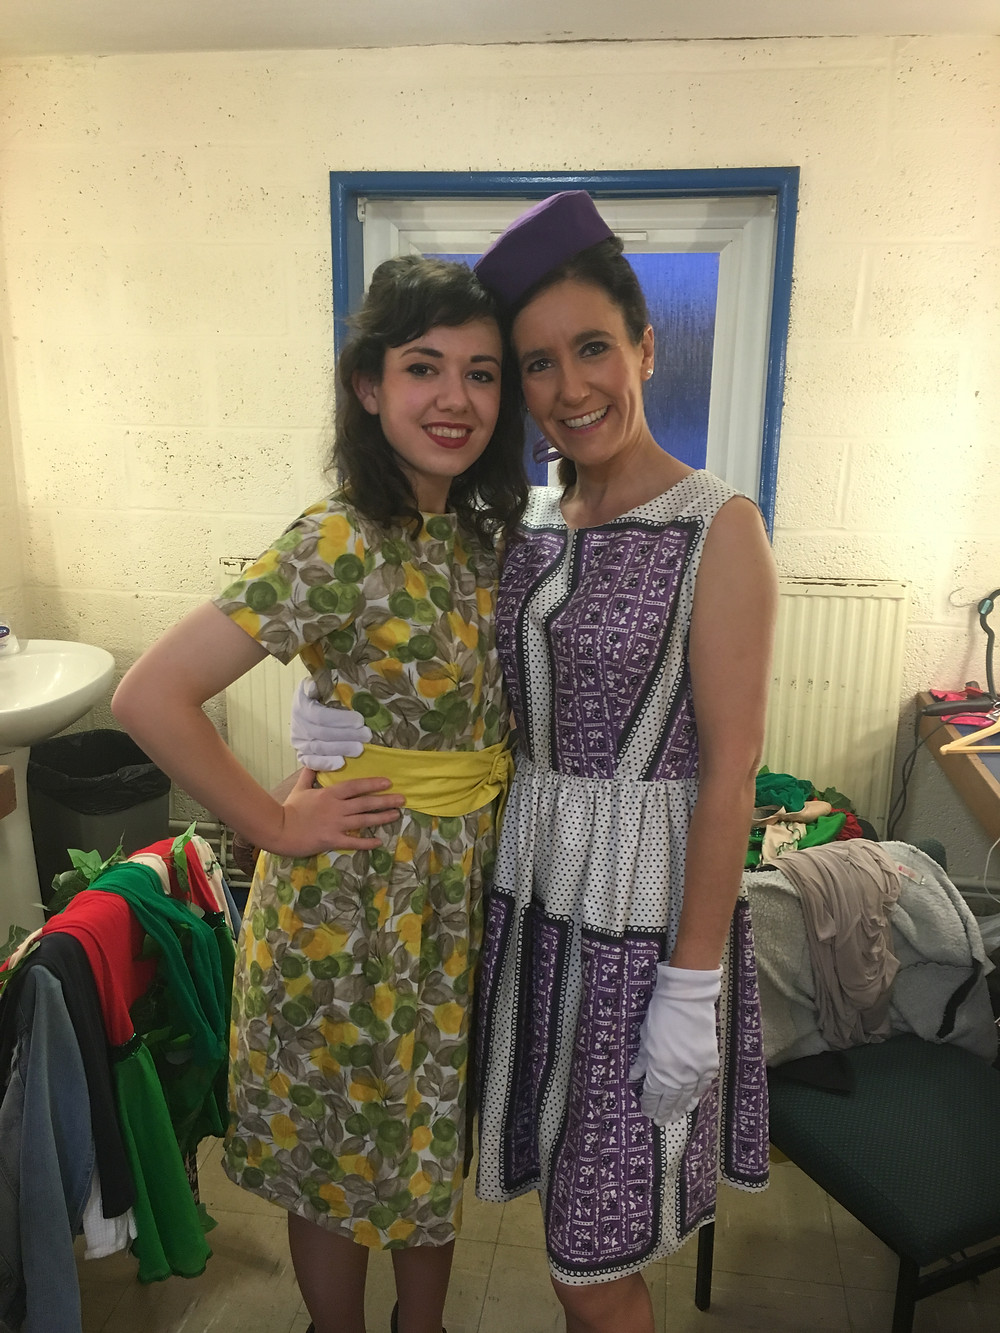 Angie and Alice backstage.